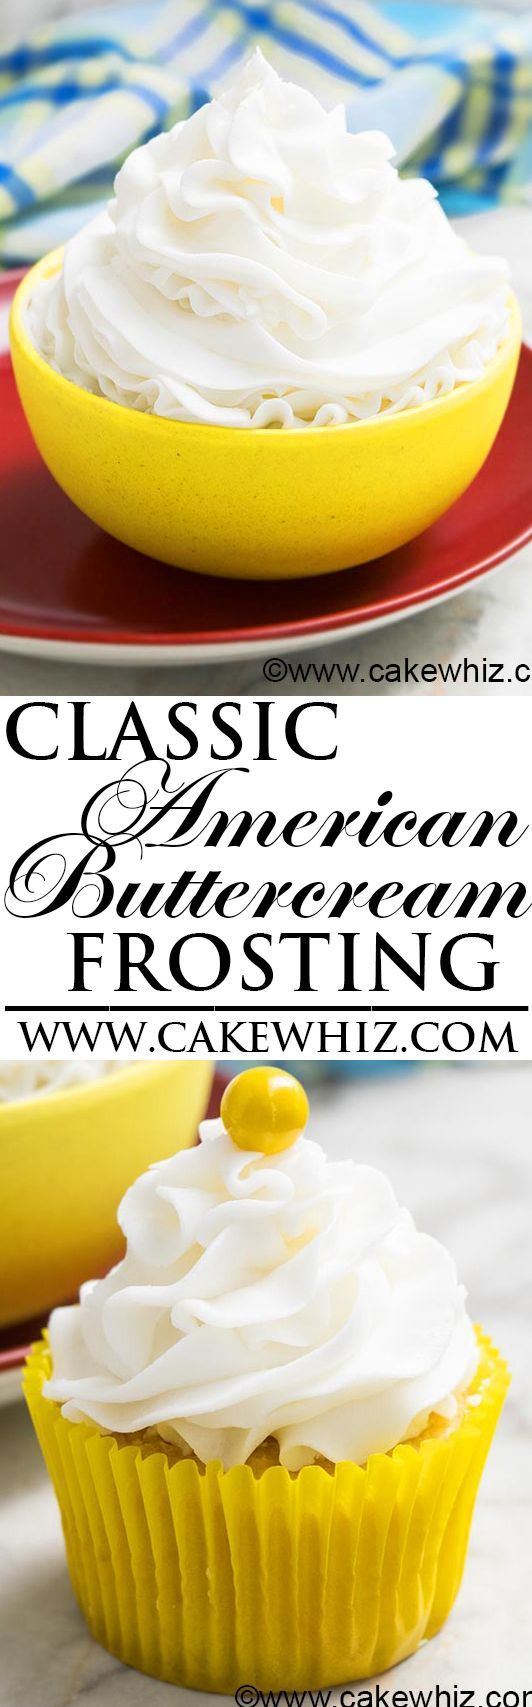 This easy classic AMERICAN BUTTERCREAM FROSTING is made with just 4 ingredients. It's firm, holds its shape and is great for piping and cake decorating. Lots of tips included on how to make and use this perfect white buttercream icing recipe. From http://cakewhiz.com